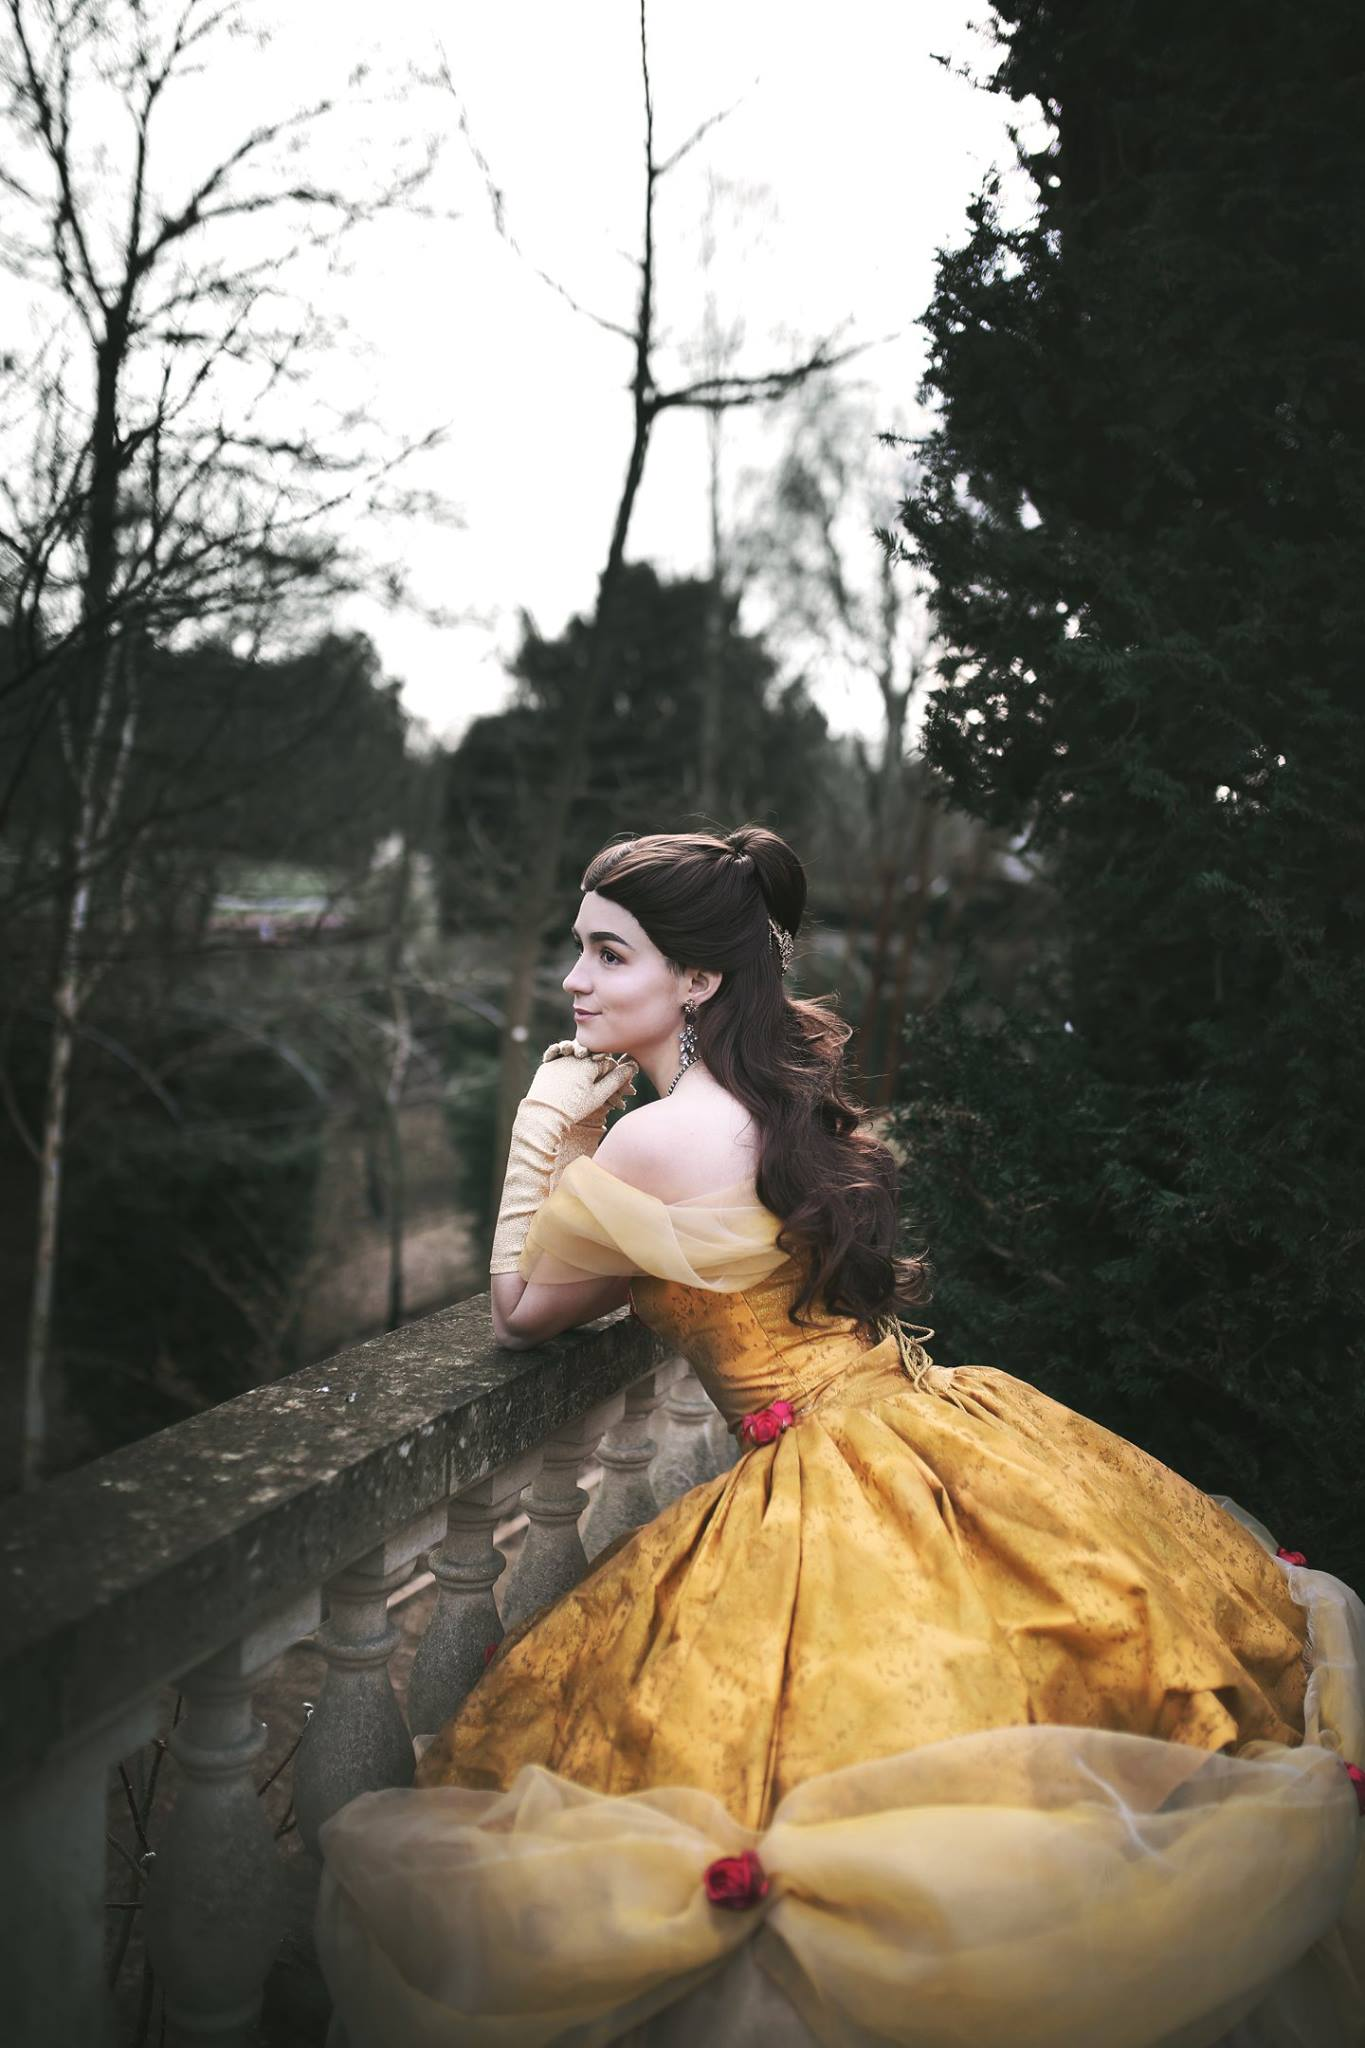 Cosmetics And Makeup: This Belle 'Beauty And The Beast' Cosplay Is Goals